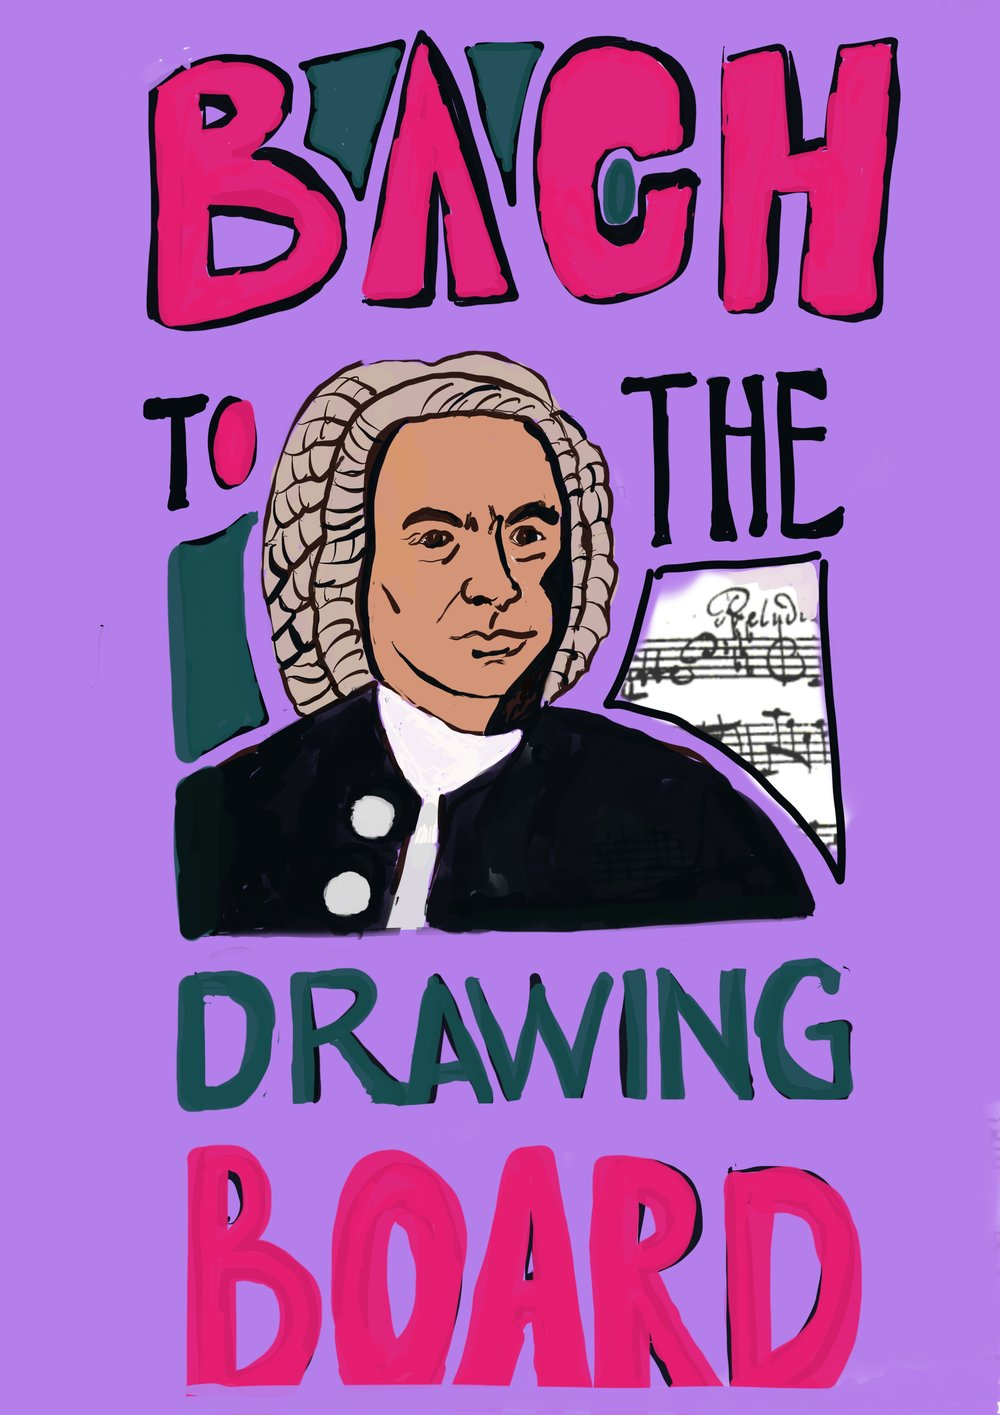 Bach to drawing board.JPG